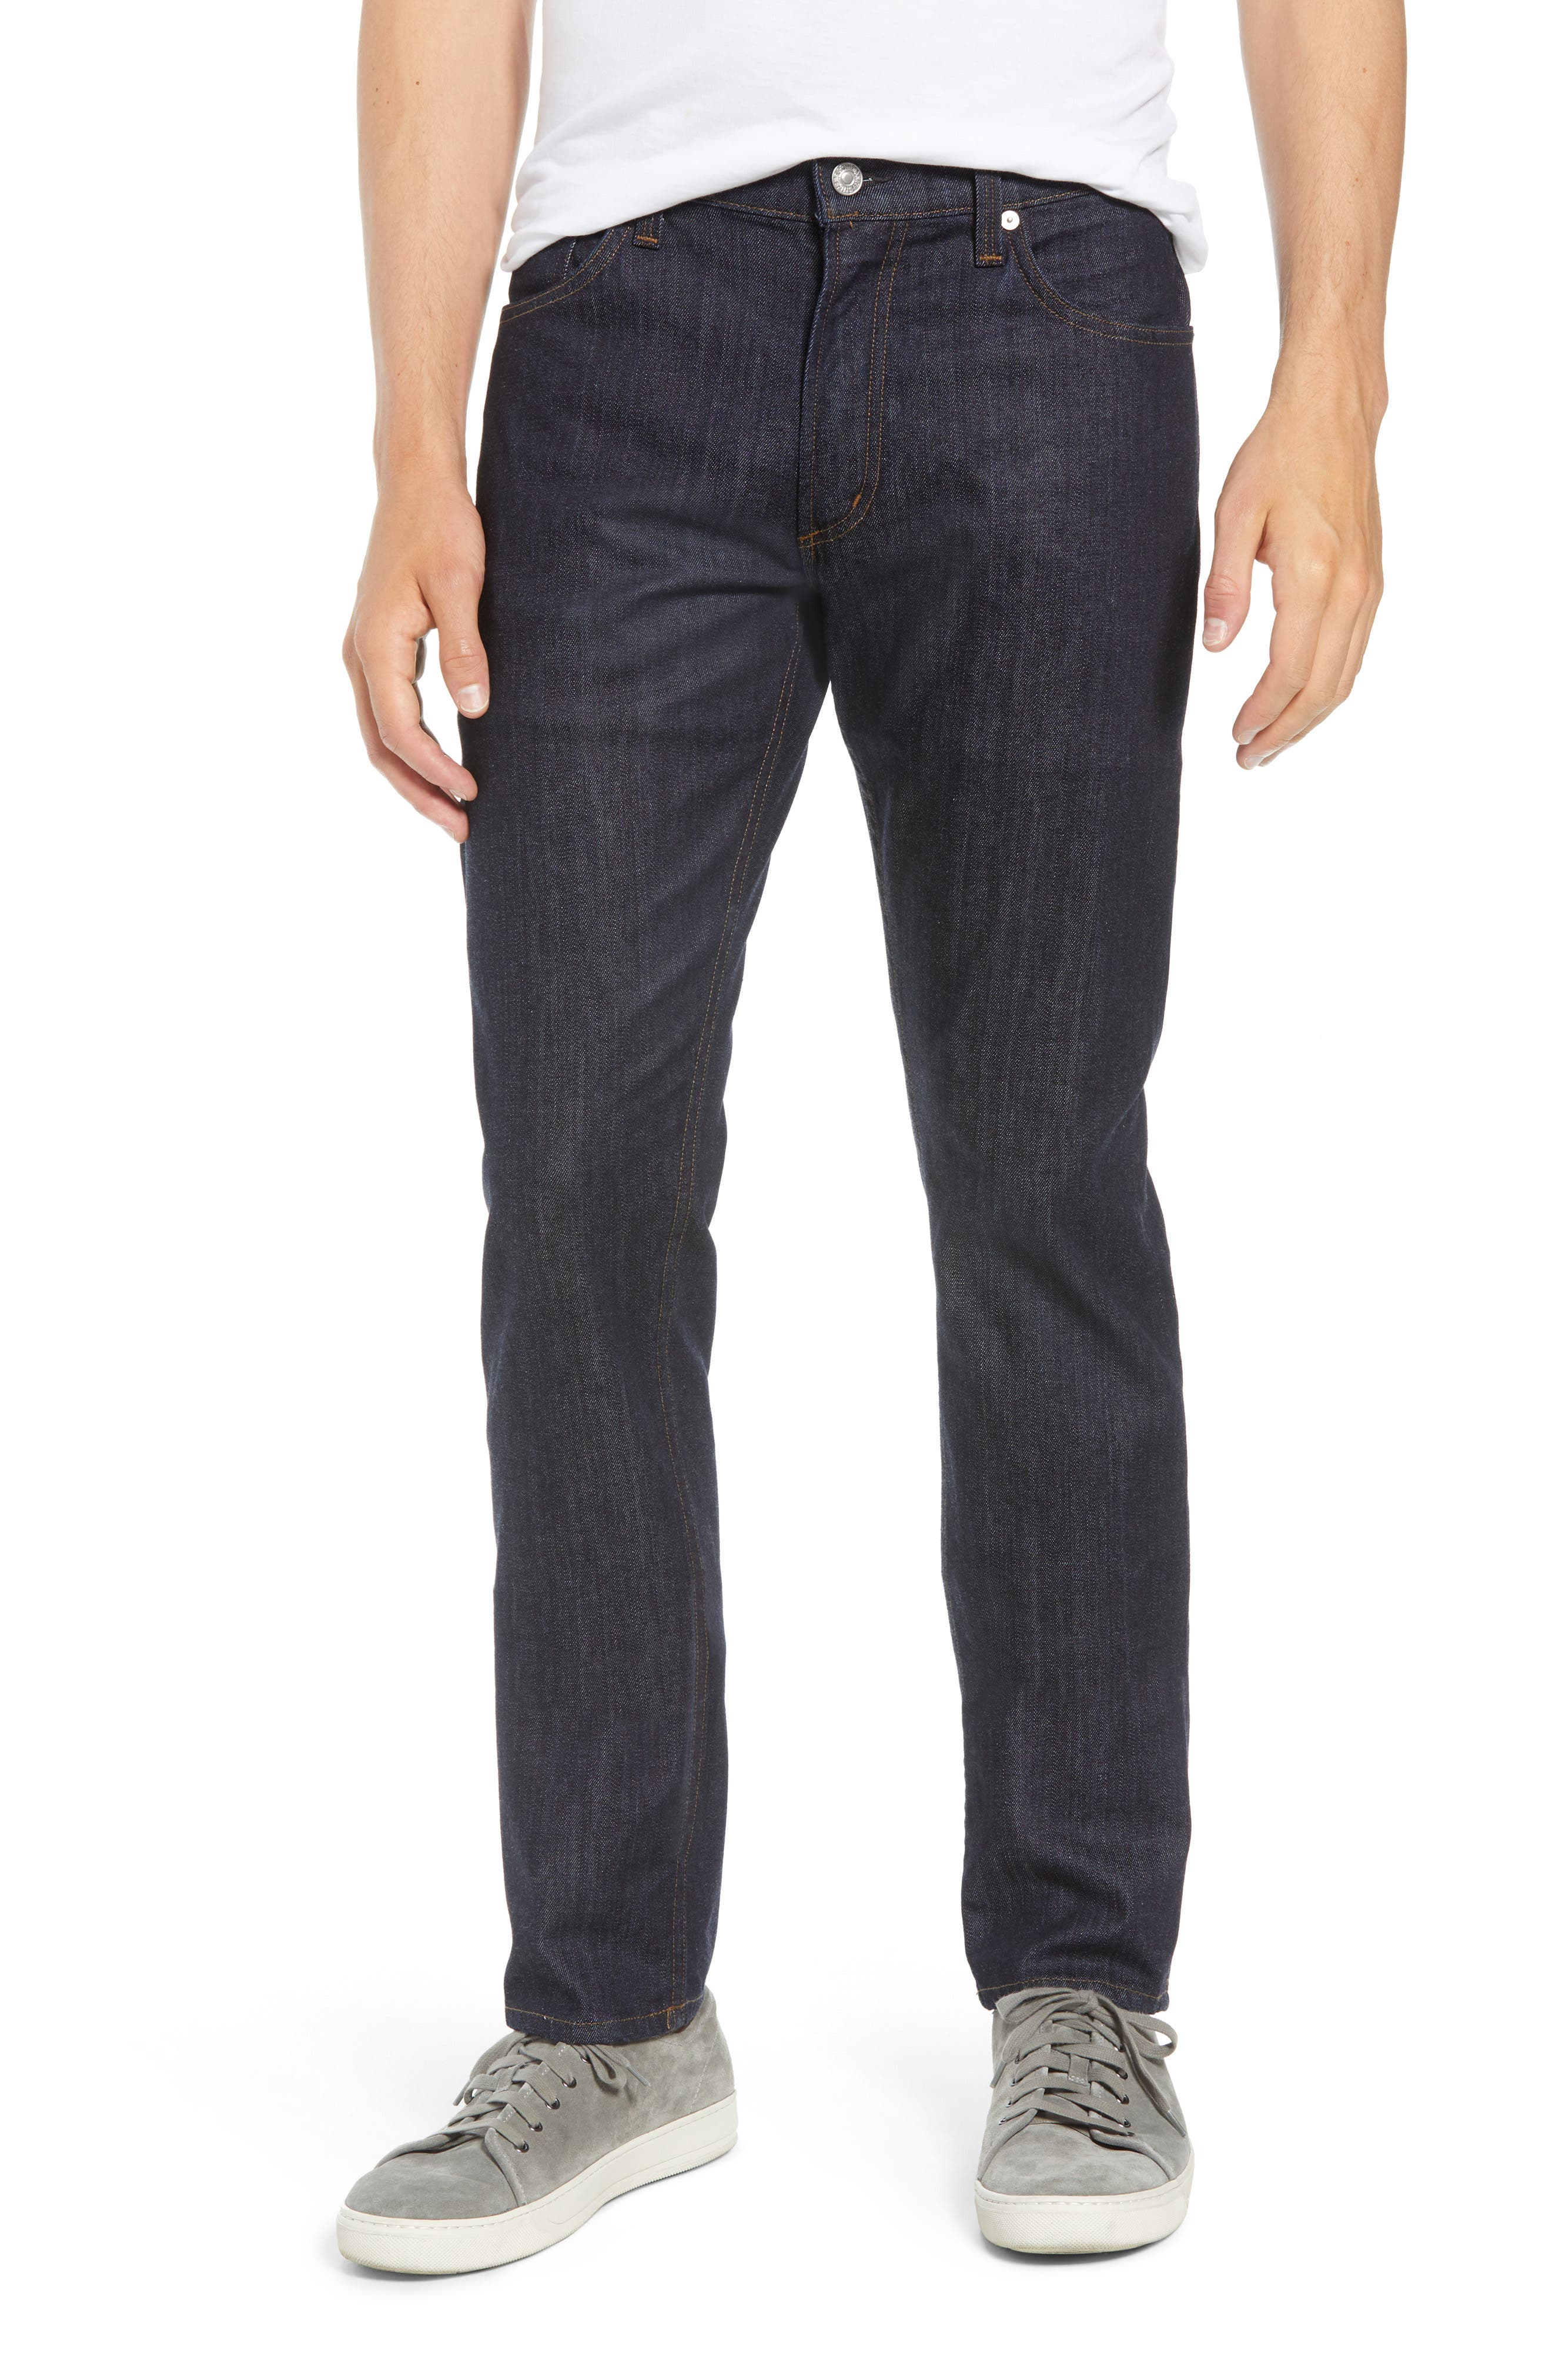 Bowery Slim Fit Jeans,                             Main thumbnail 1, color,                             SUPERIOR